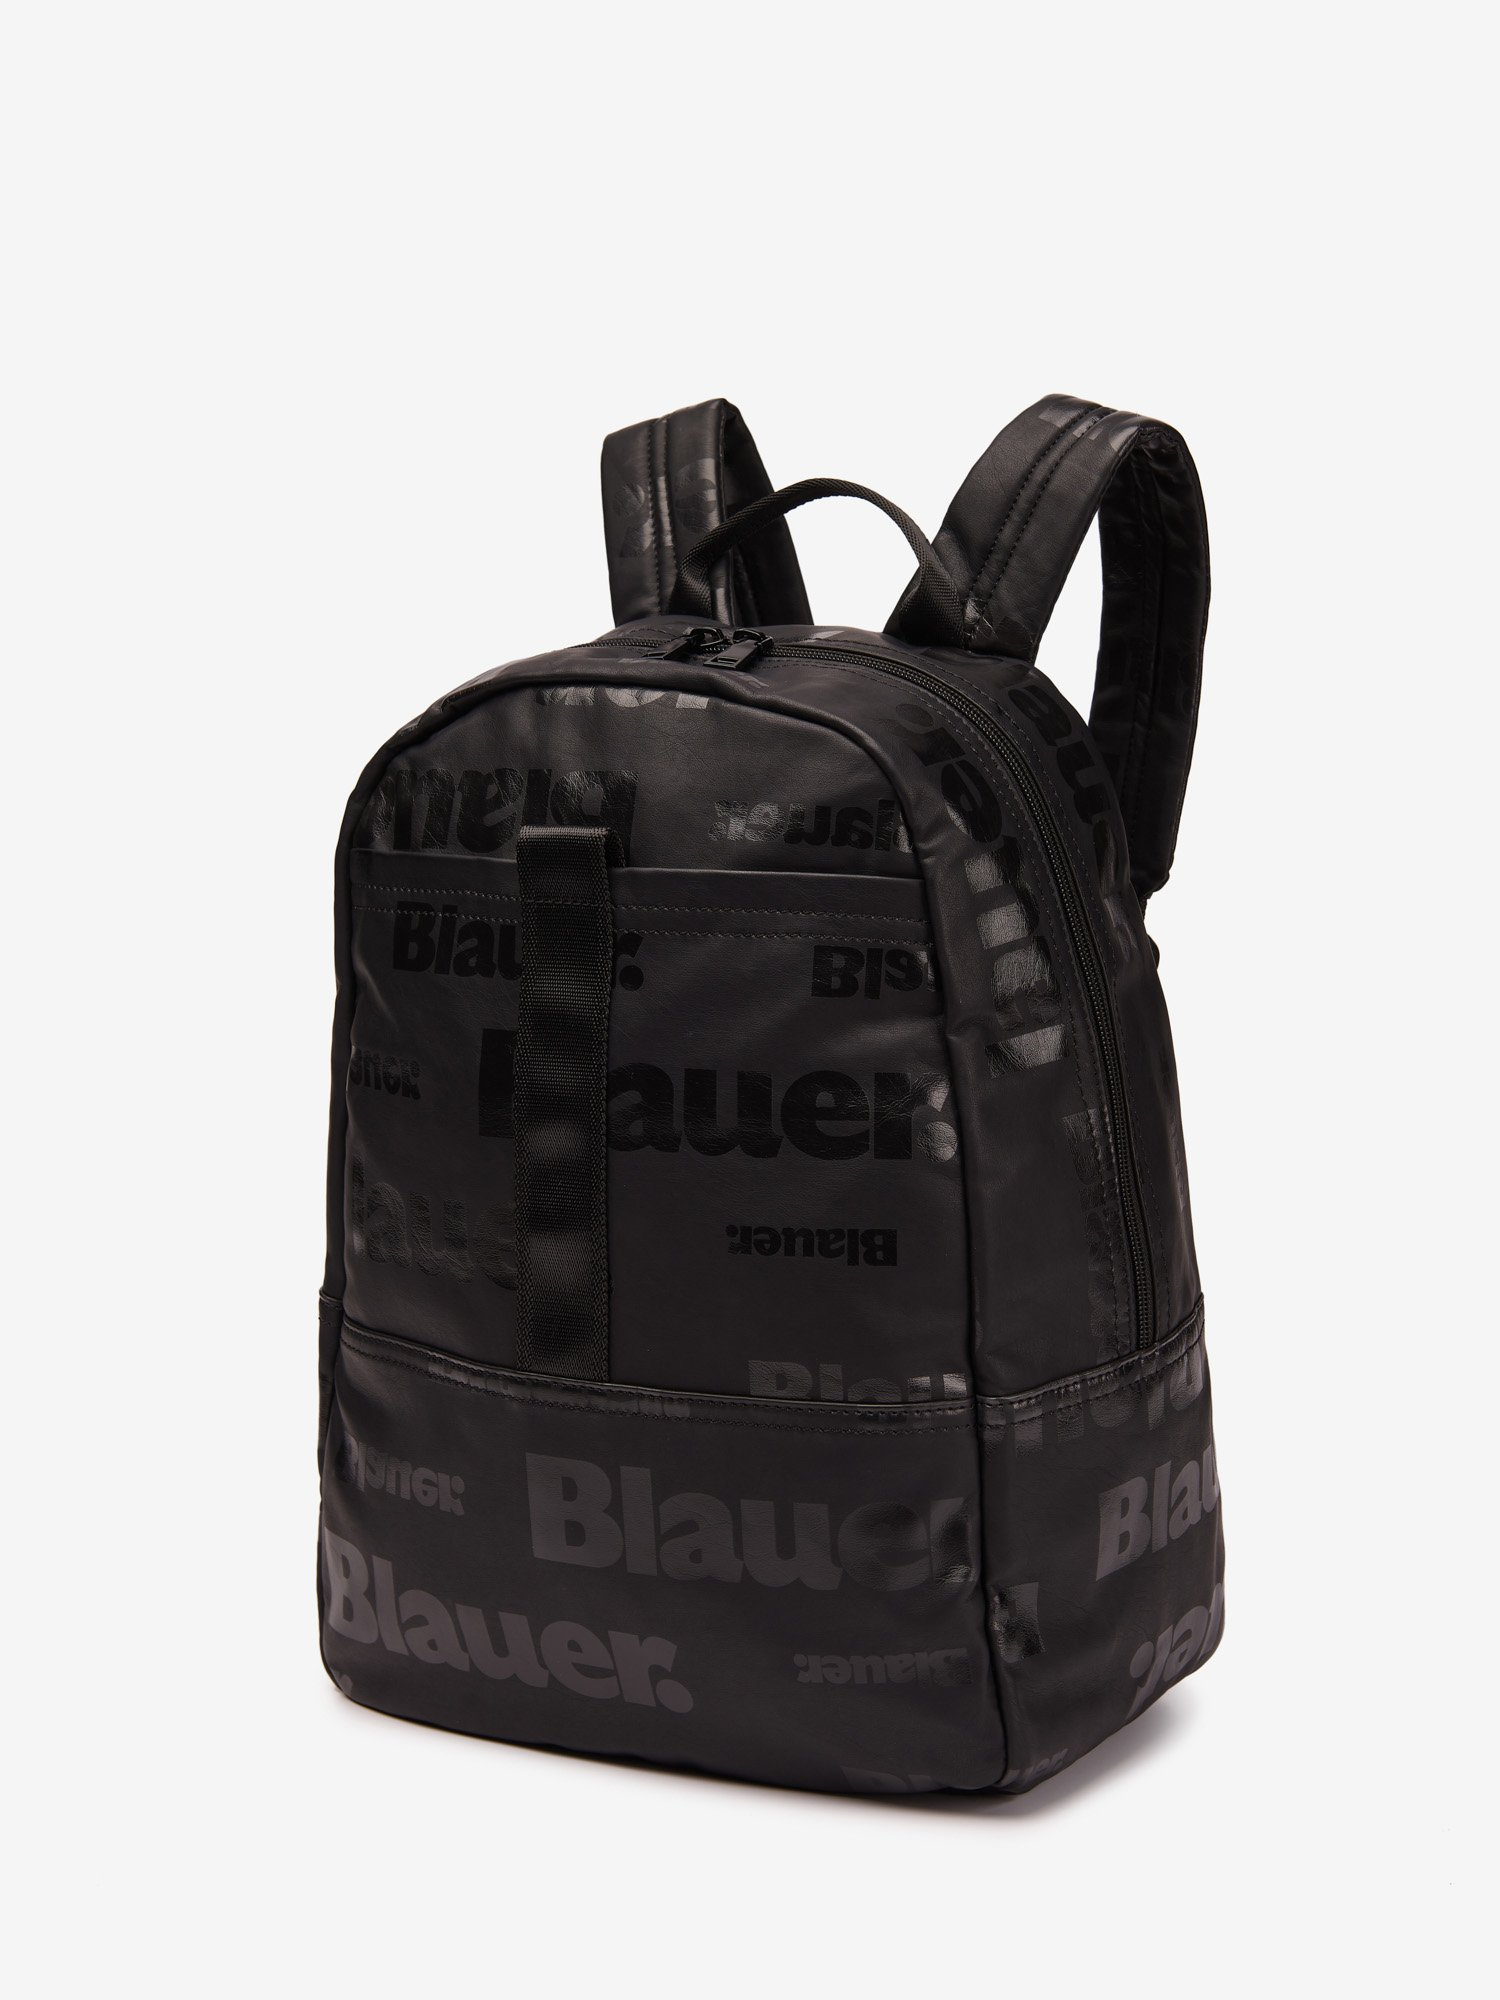 NONAME BACKPACK - Blauer